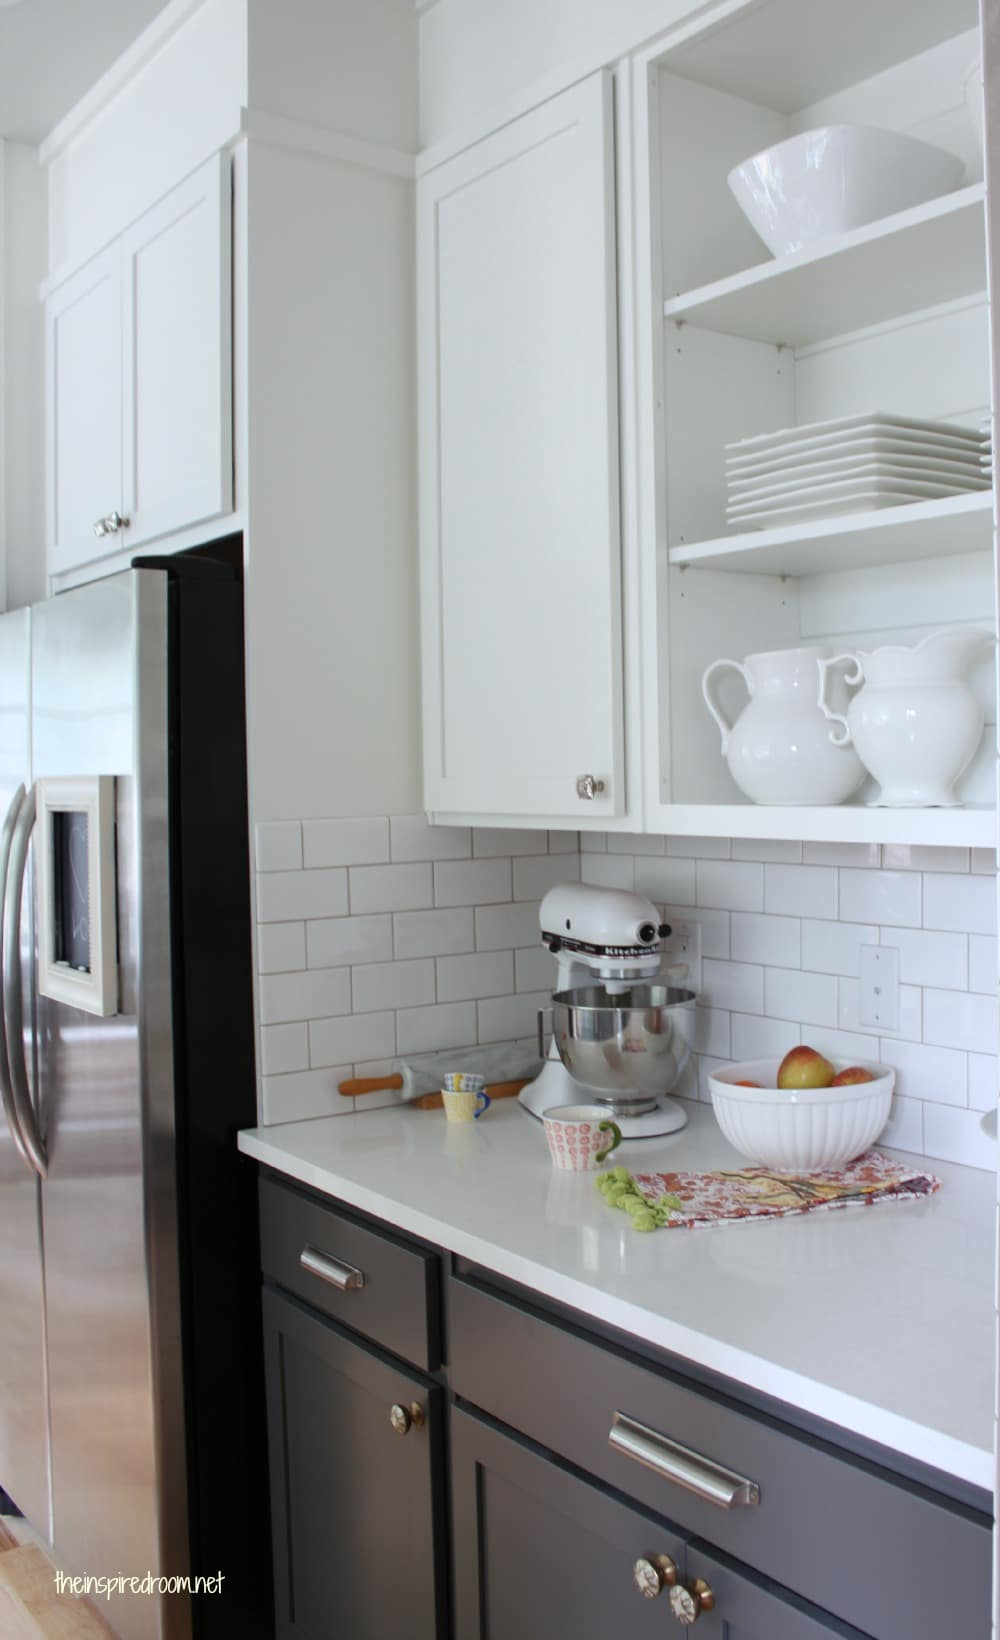 Modern Painted Kitchen Cabinet With White Appliances